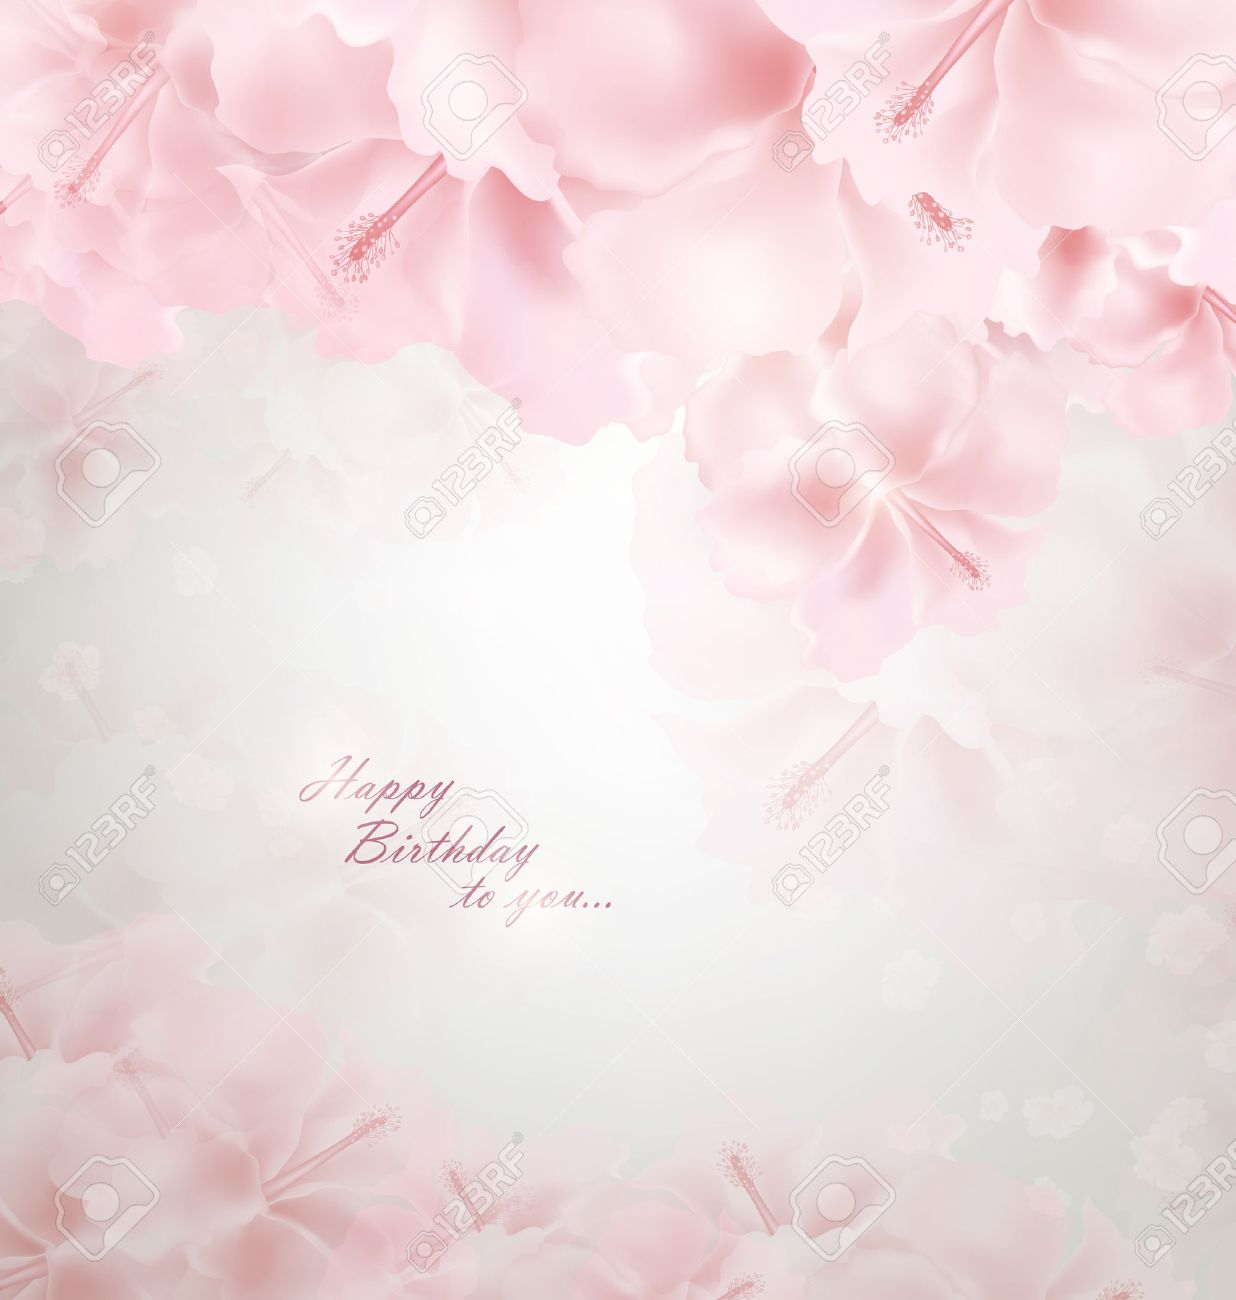 birthday wishes background images ; 38691151-pastel-floral-background-with-happy-birthday-wishes